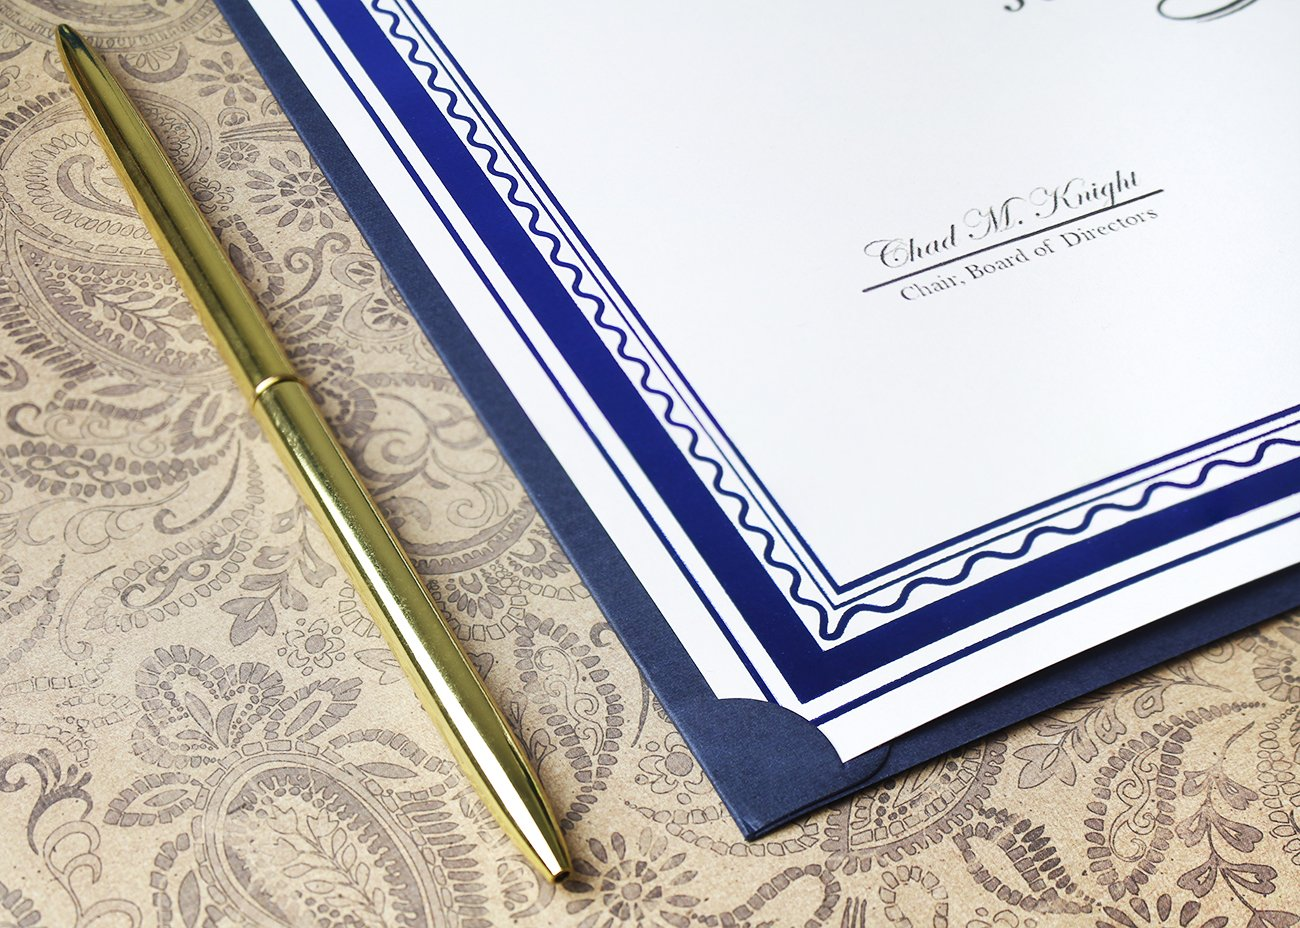 12-Pack Certificate Holder - Diploma Cover, Document Cover for Letter-Sized Award Certificates, Blue, 11.2 x 8.7 inches by Best Paper Greetings (Image #8)